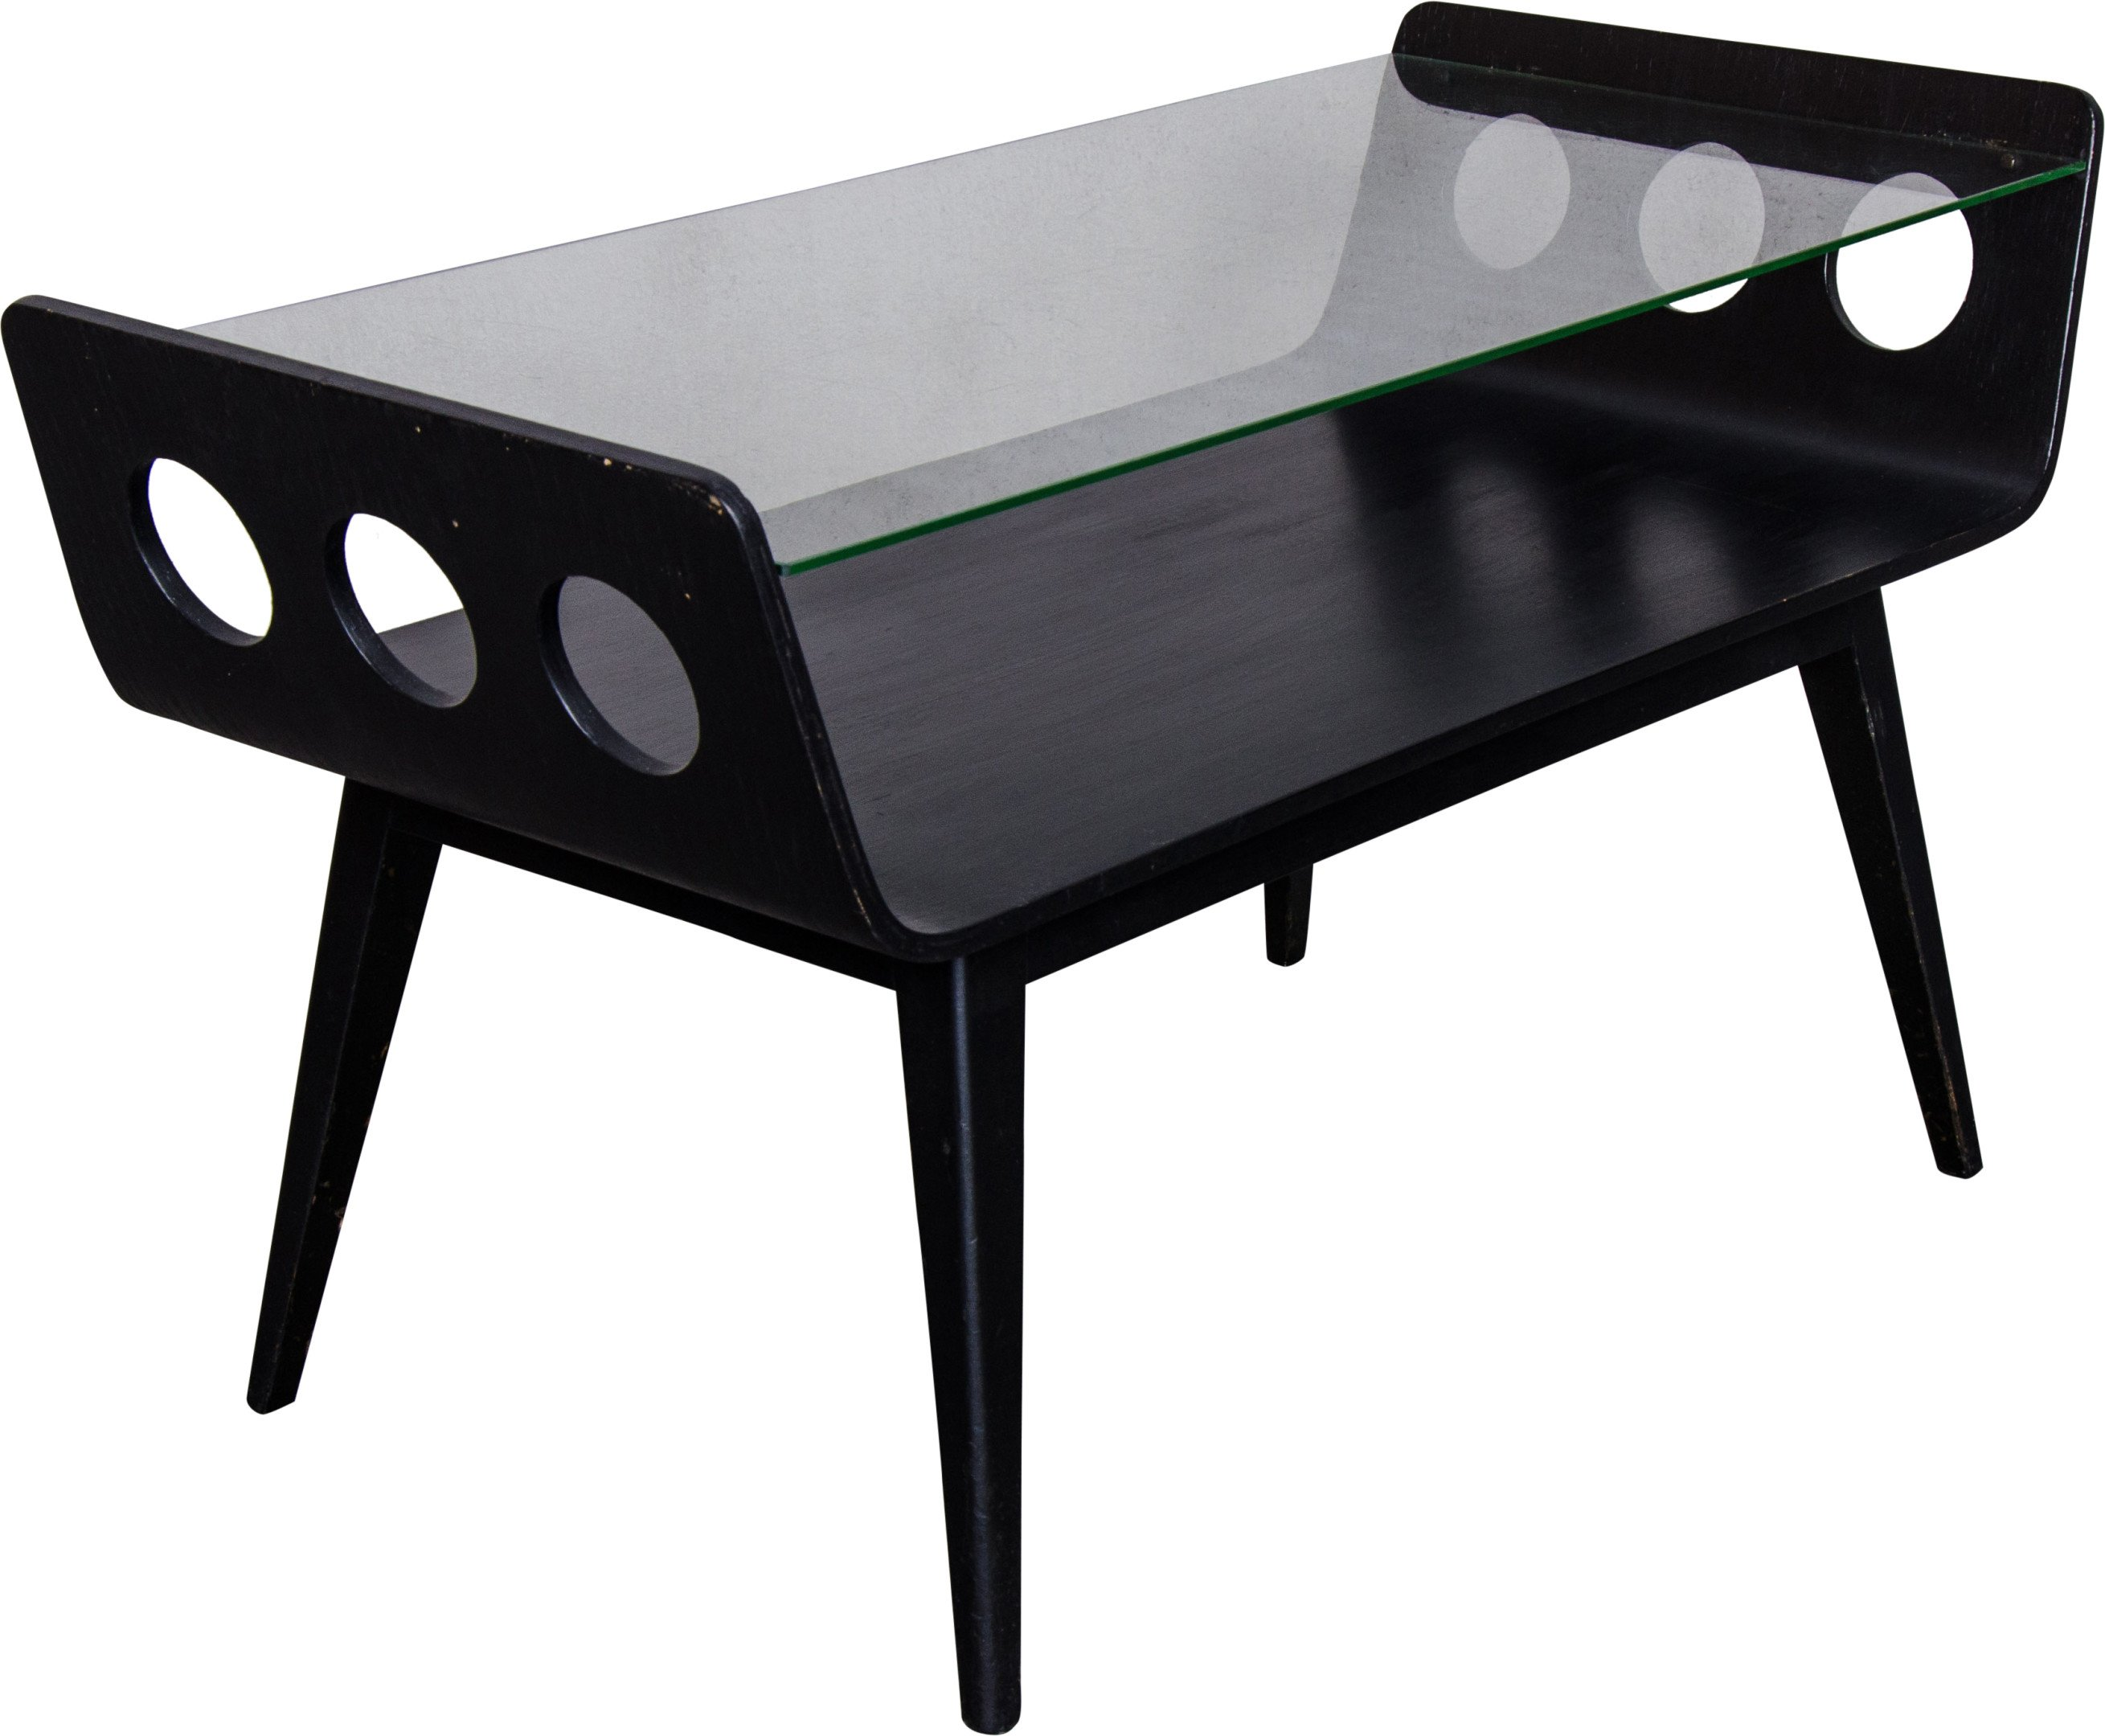 Coffee Table by C. Alons, Gouda Den Boer, 1950s